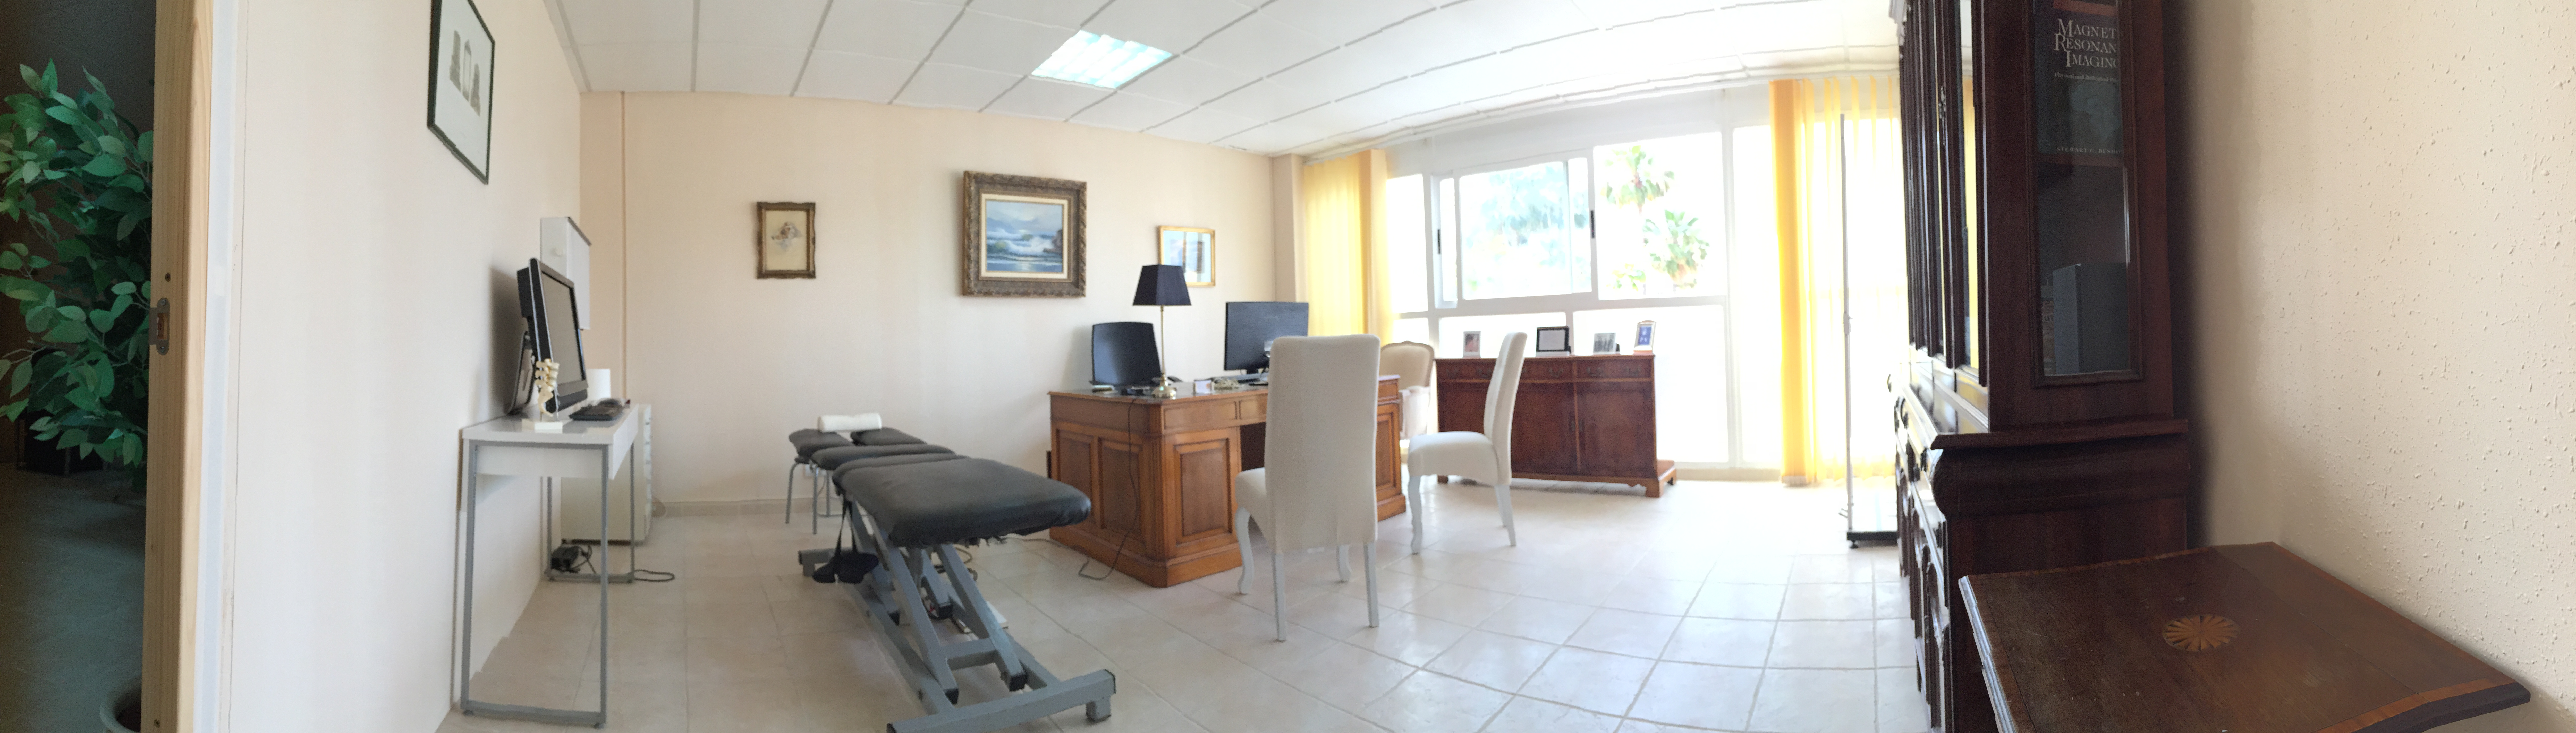 consulting room Jeremy M Kenton Osteopath